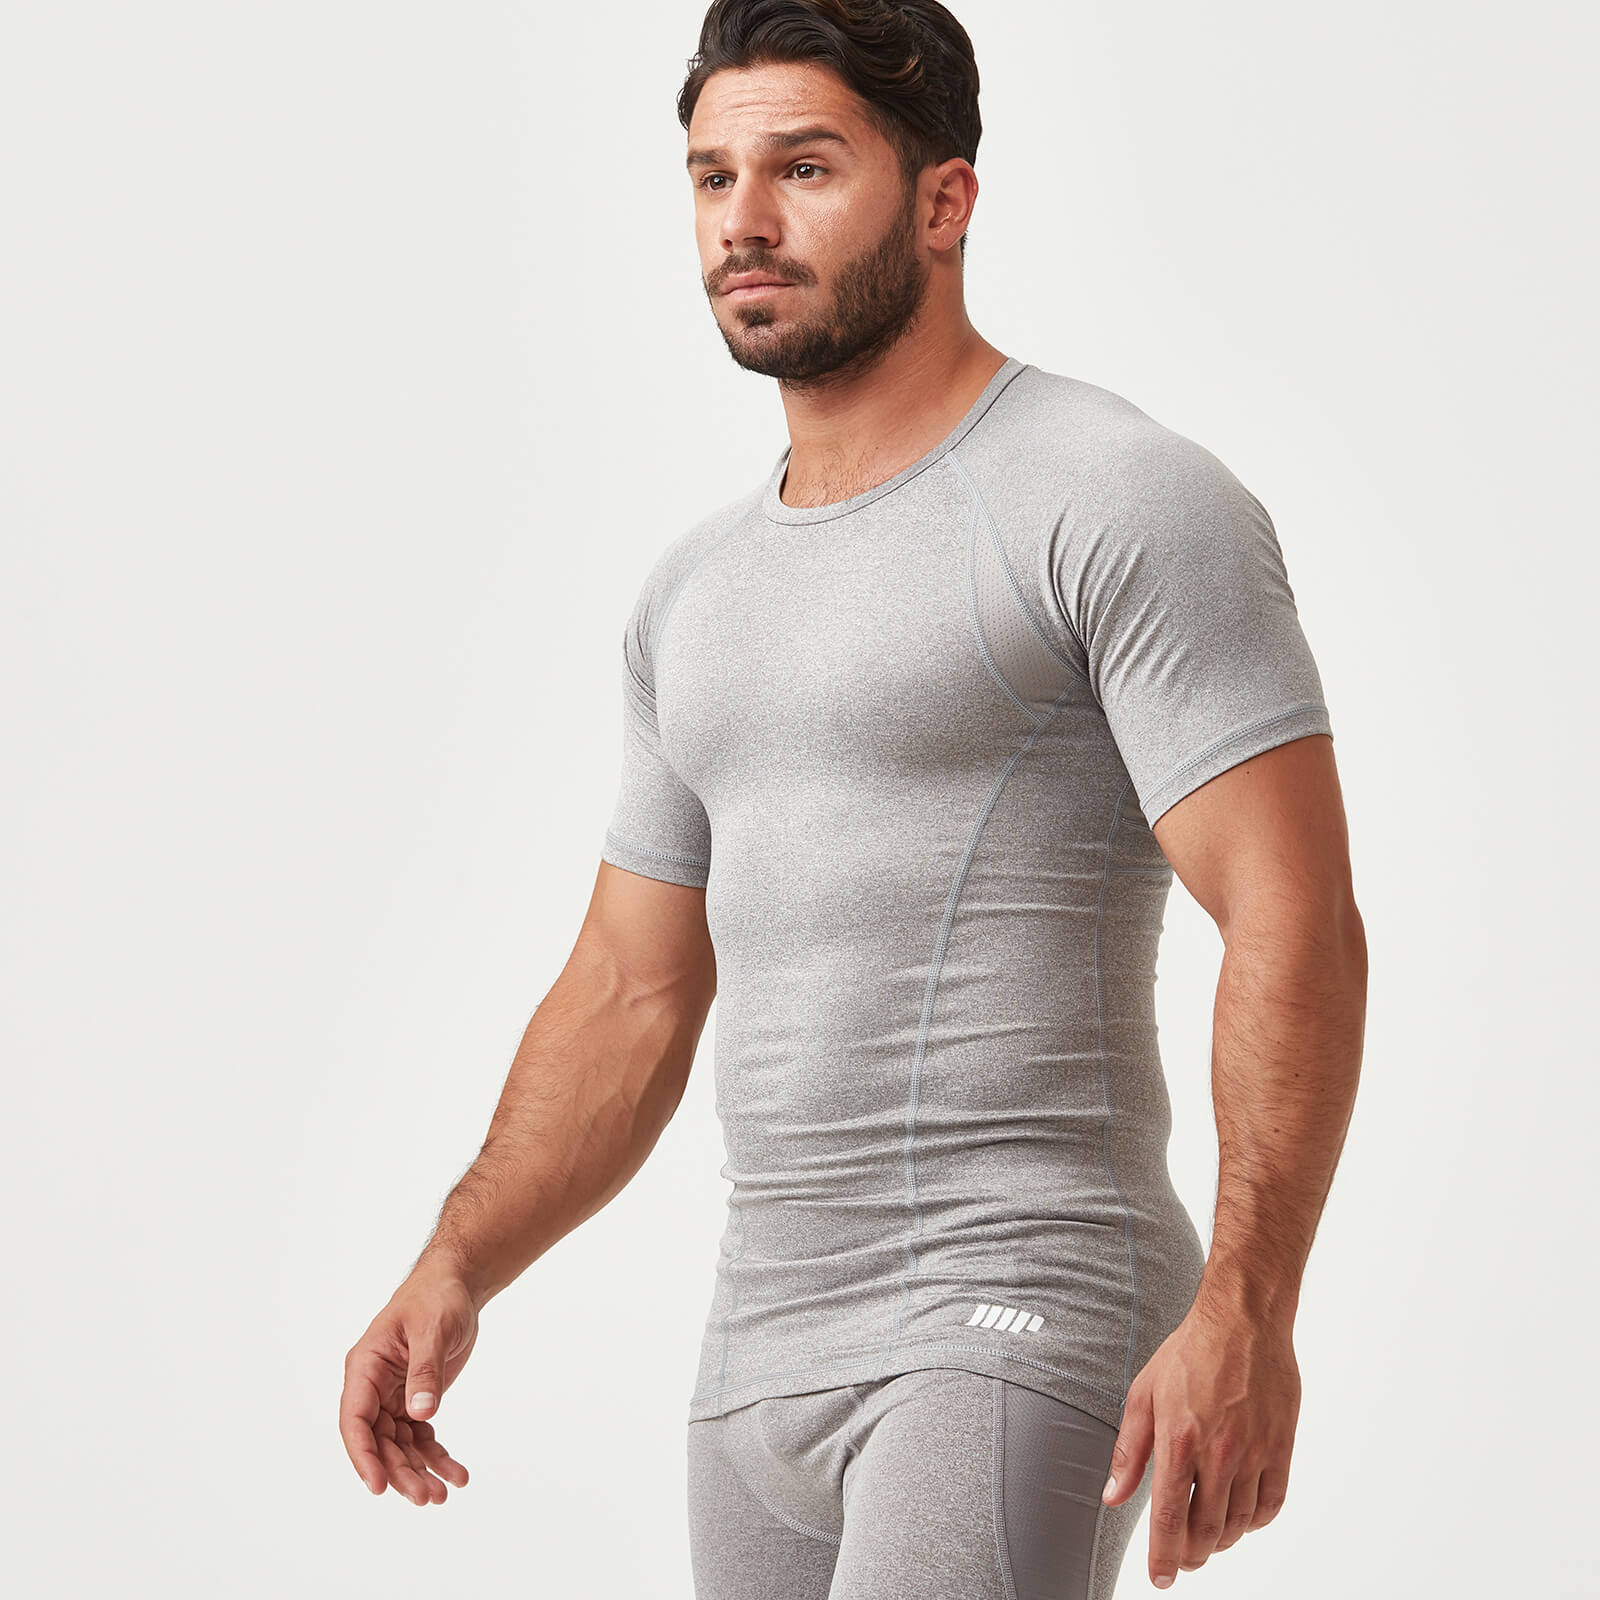 Myprotein Compression Short Sleeve T-Shirt - Grey Marl - S